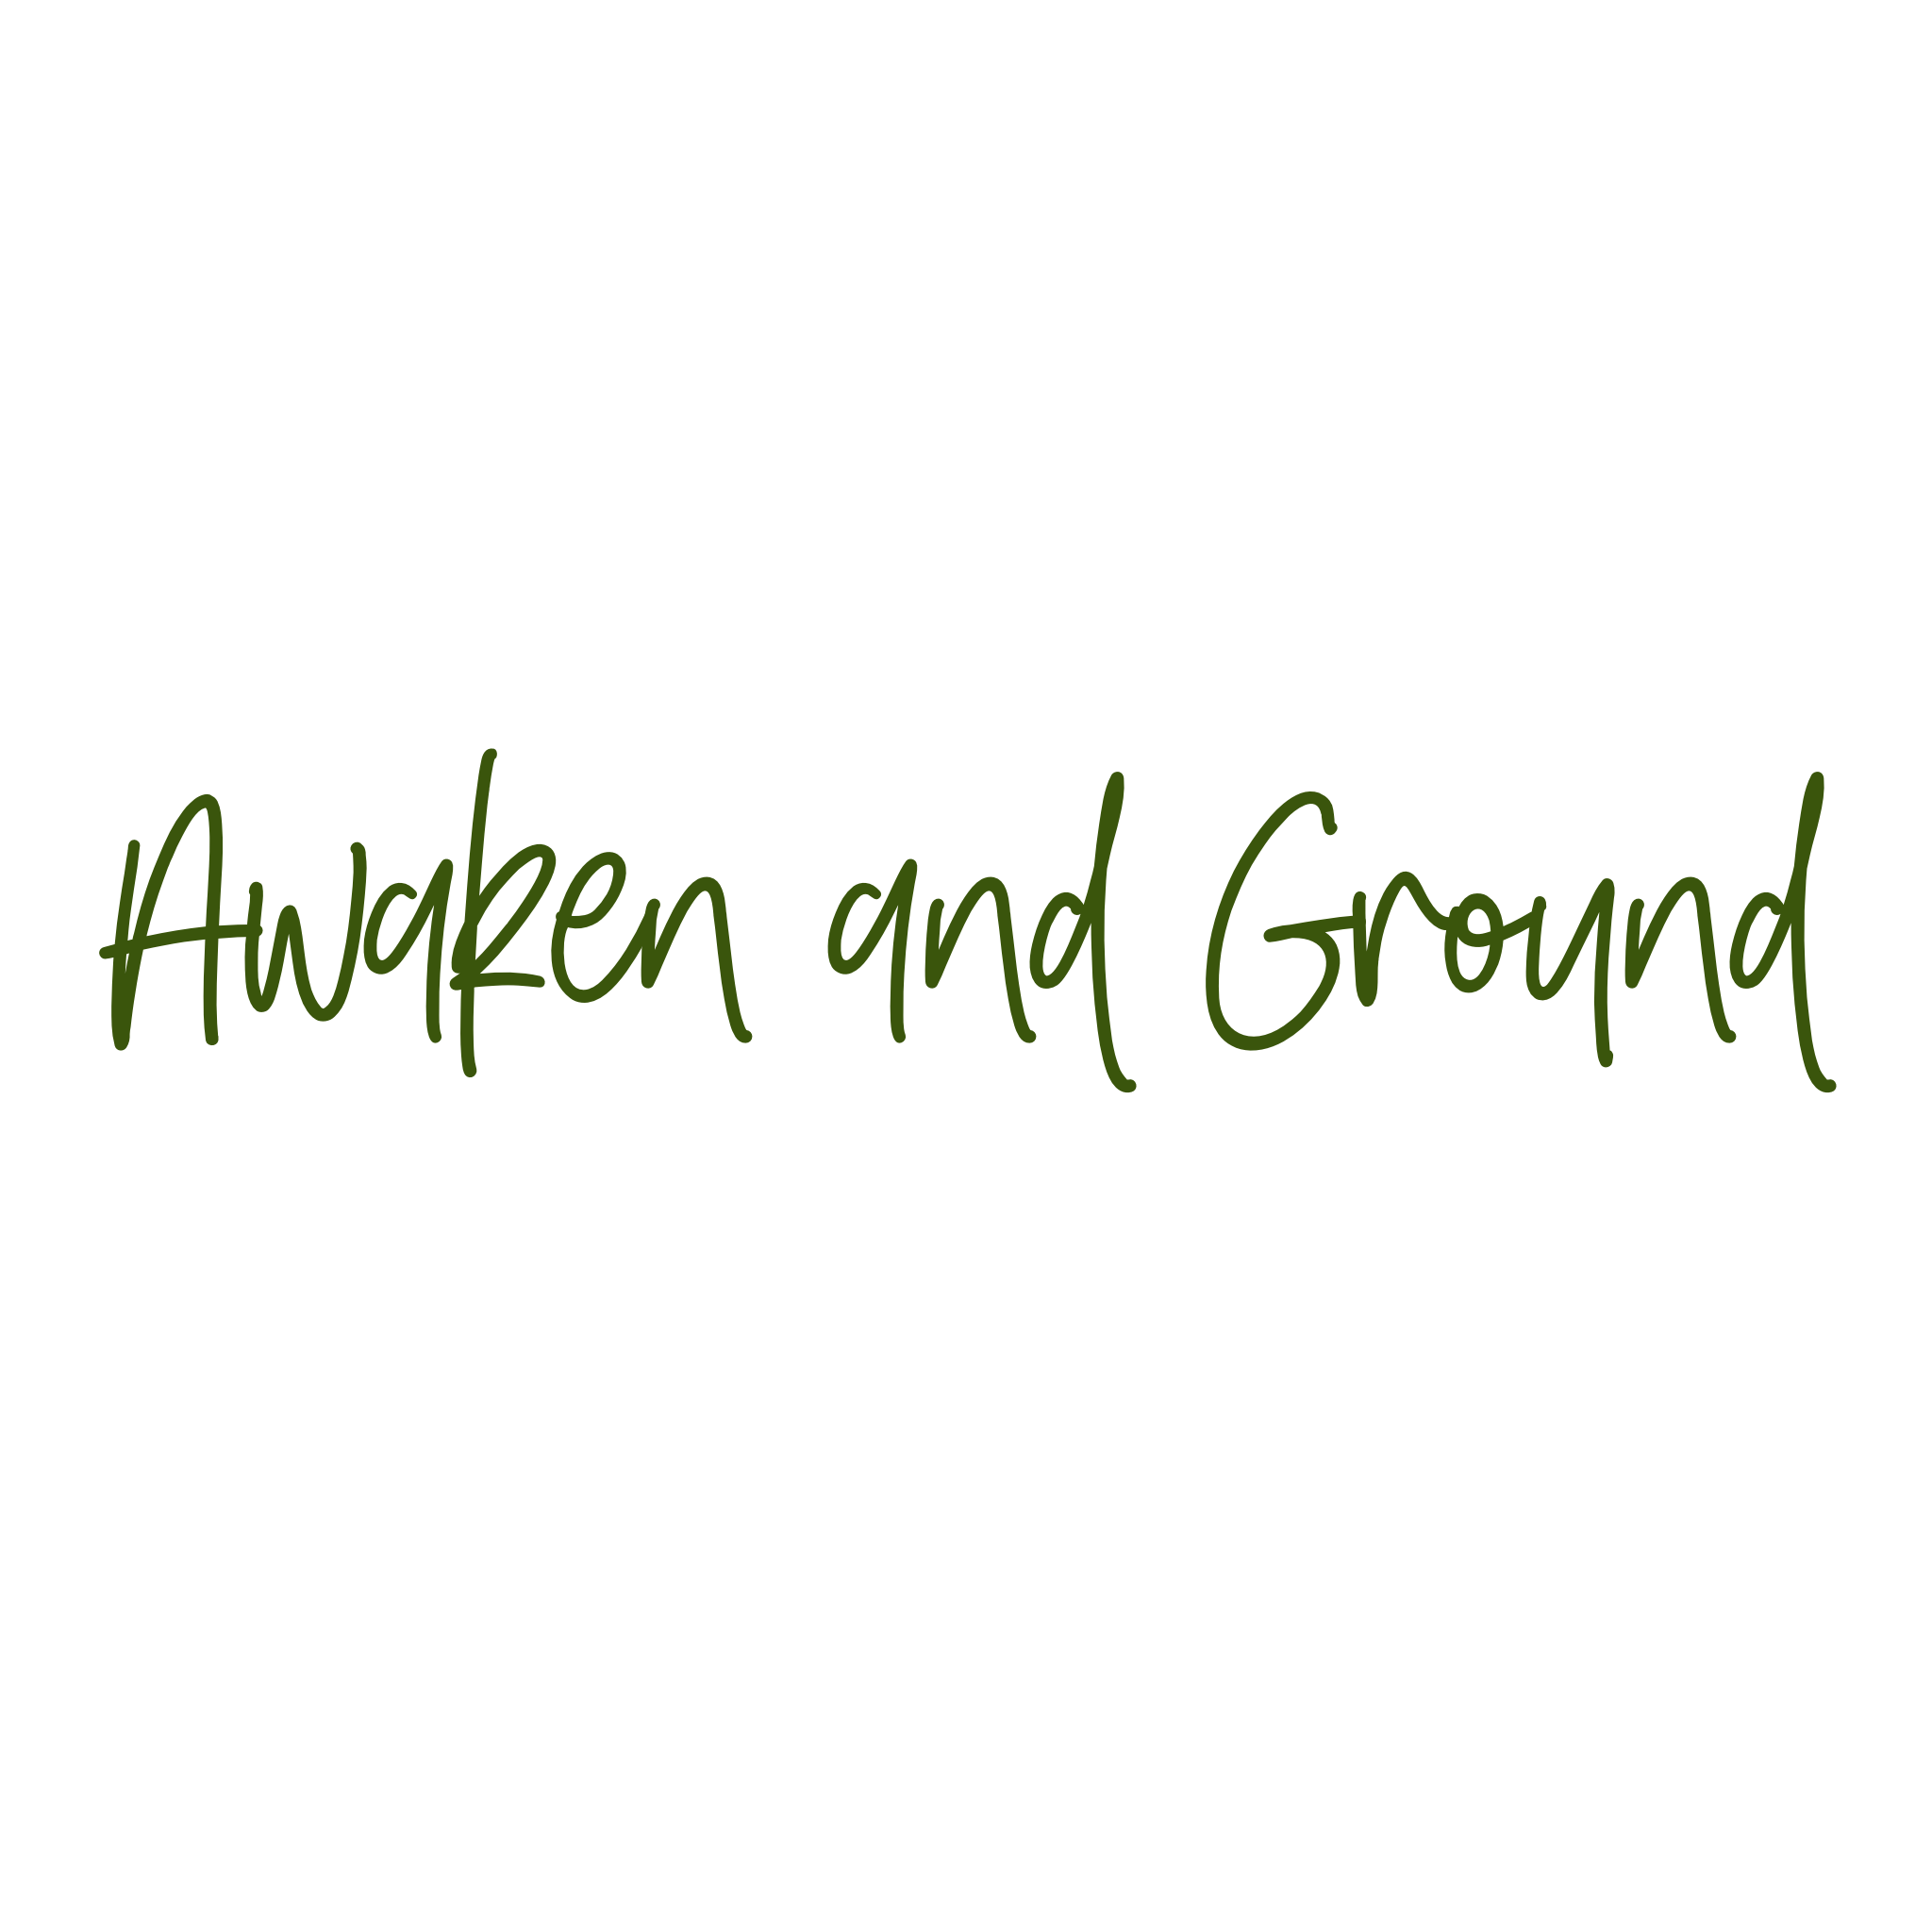 Awaken and Ground